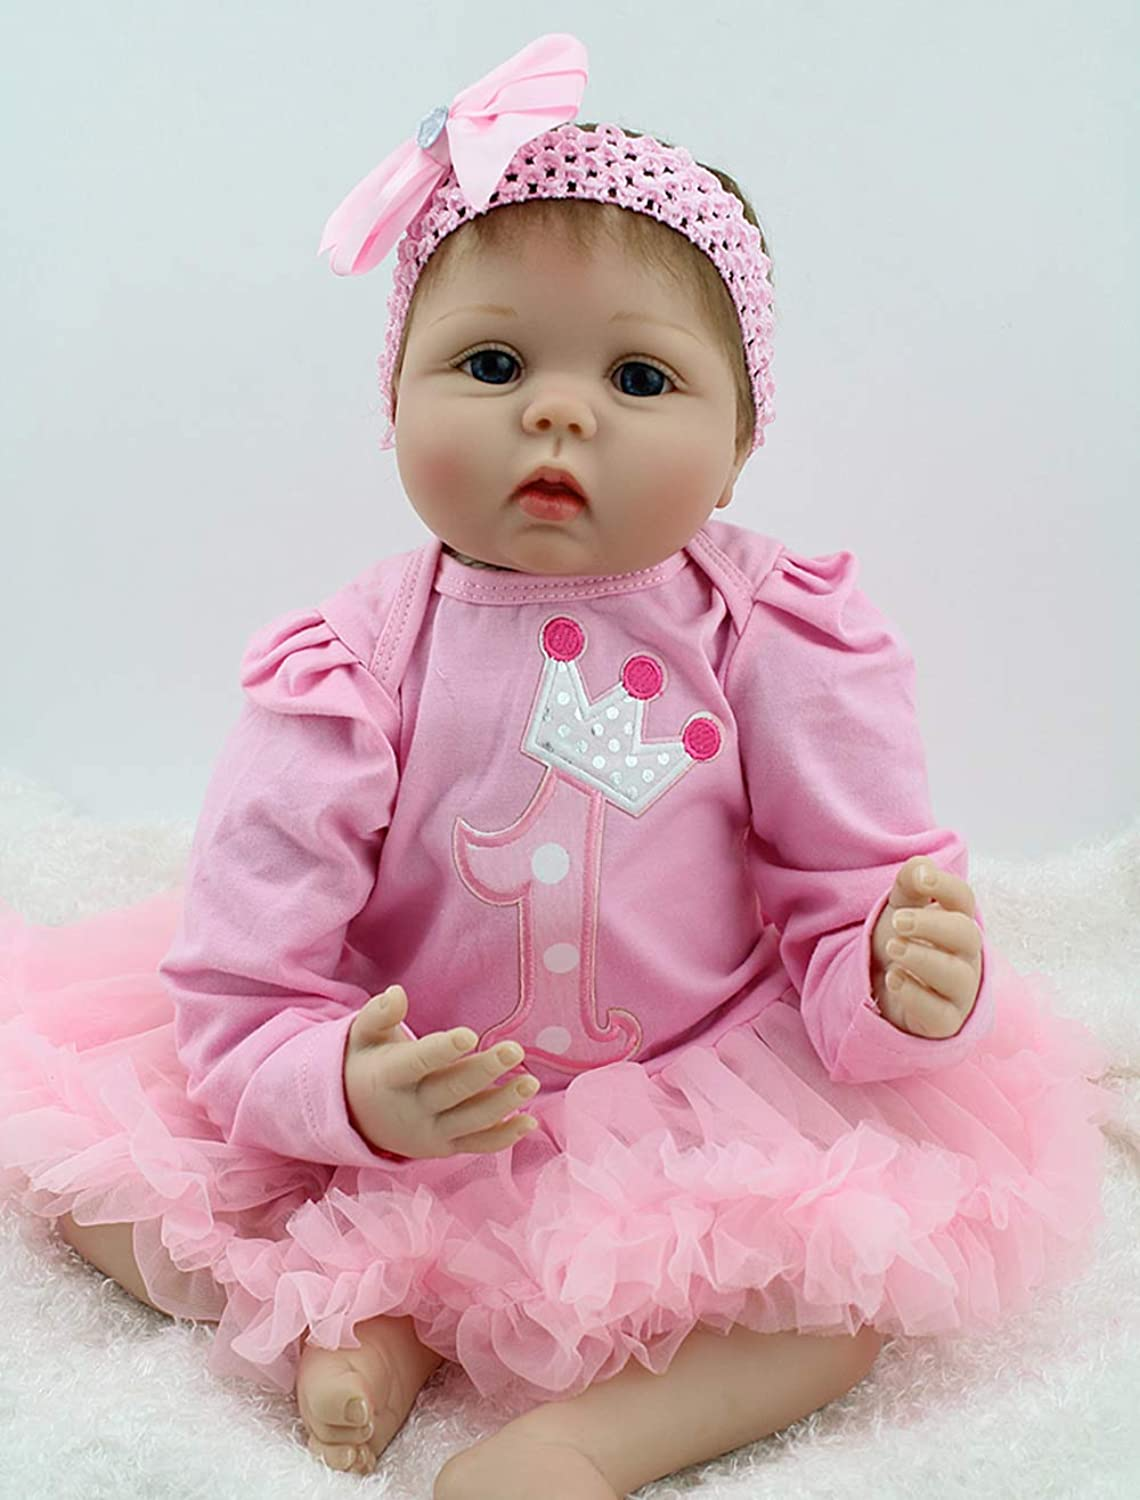 ZIYIUI Handmade Soft Silicone Vinyl Cotton Body 22inch 55cm Reborn Baby Doll Lifelike Eyes Open Newborn Girl in Pink Knit Outfit and Accessories